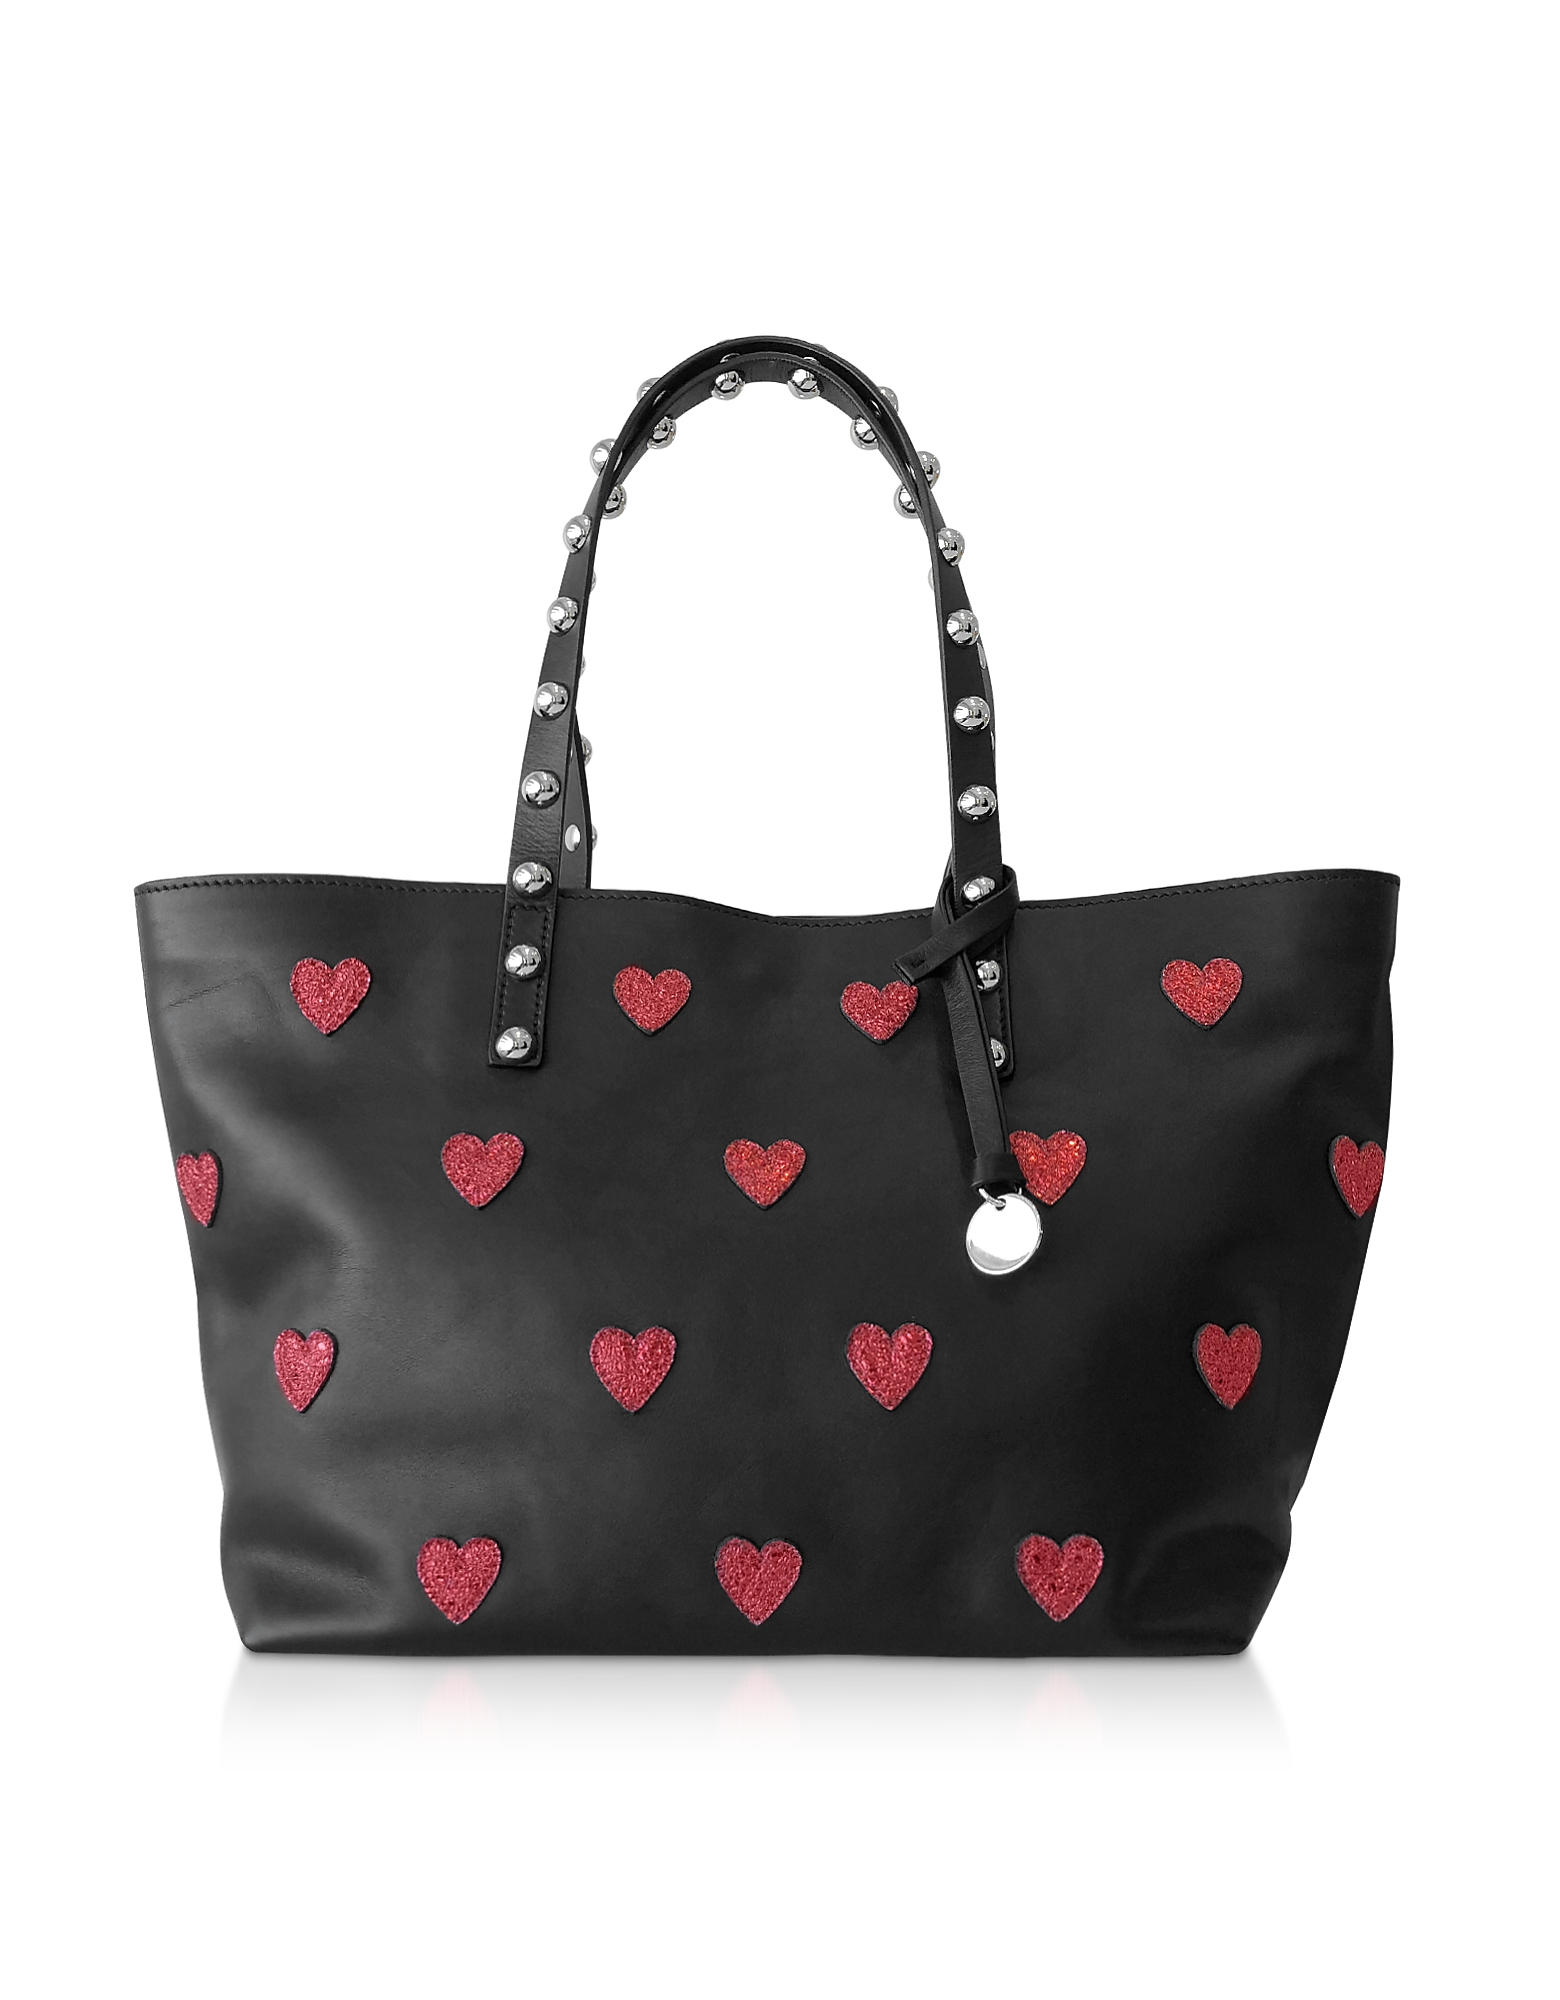 Red Heart Printed Leather Tote Bag